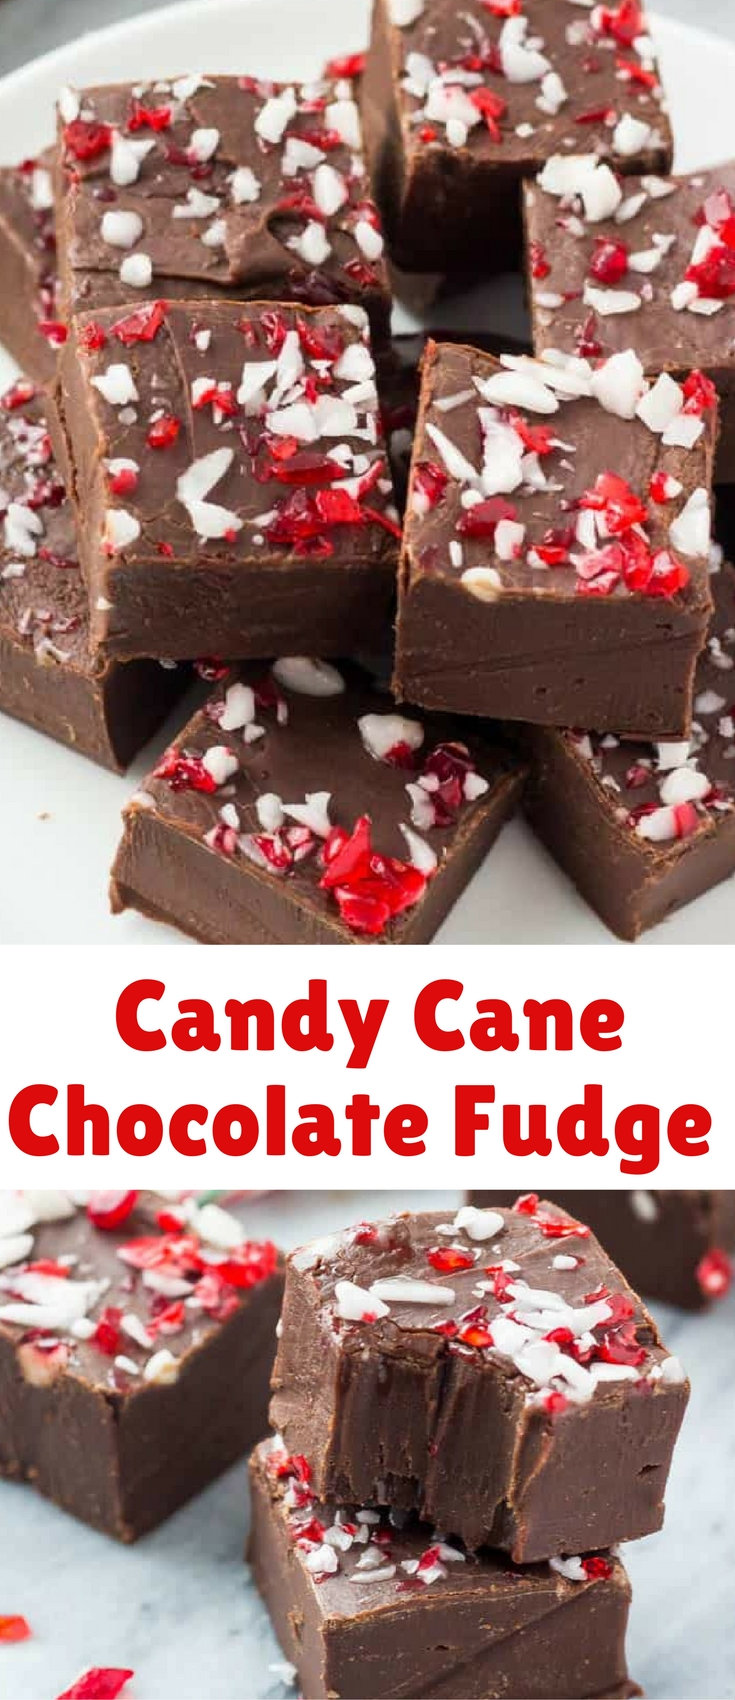 This Candy Cane Chocolate Fudge is smooth, creamy & perfect for Christmas! So easy to make – it's a great gift too!